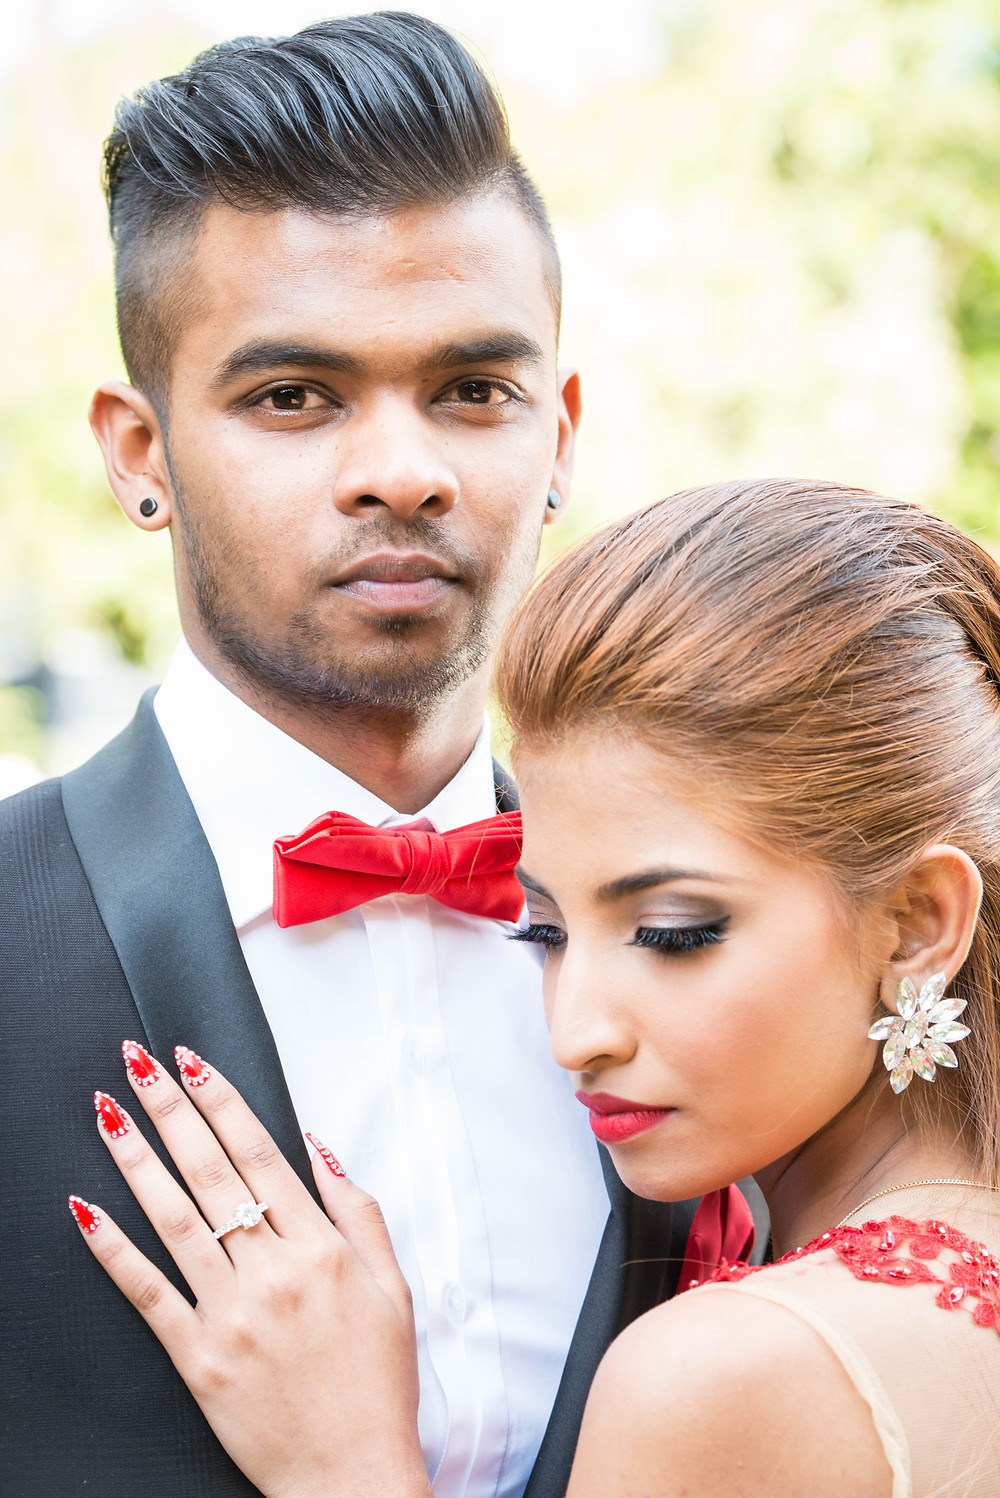 matric farewell photo shoot ideas